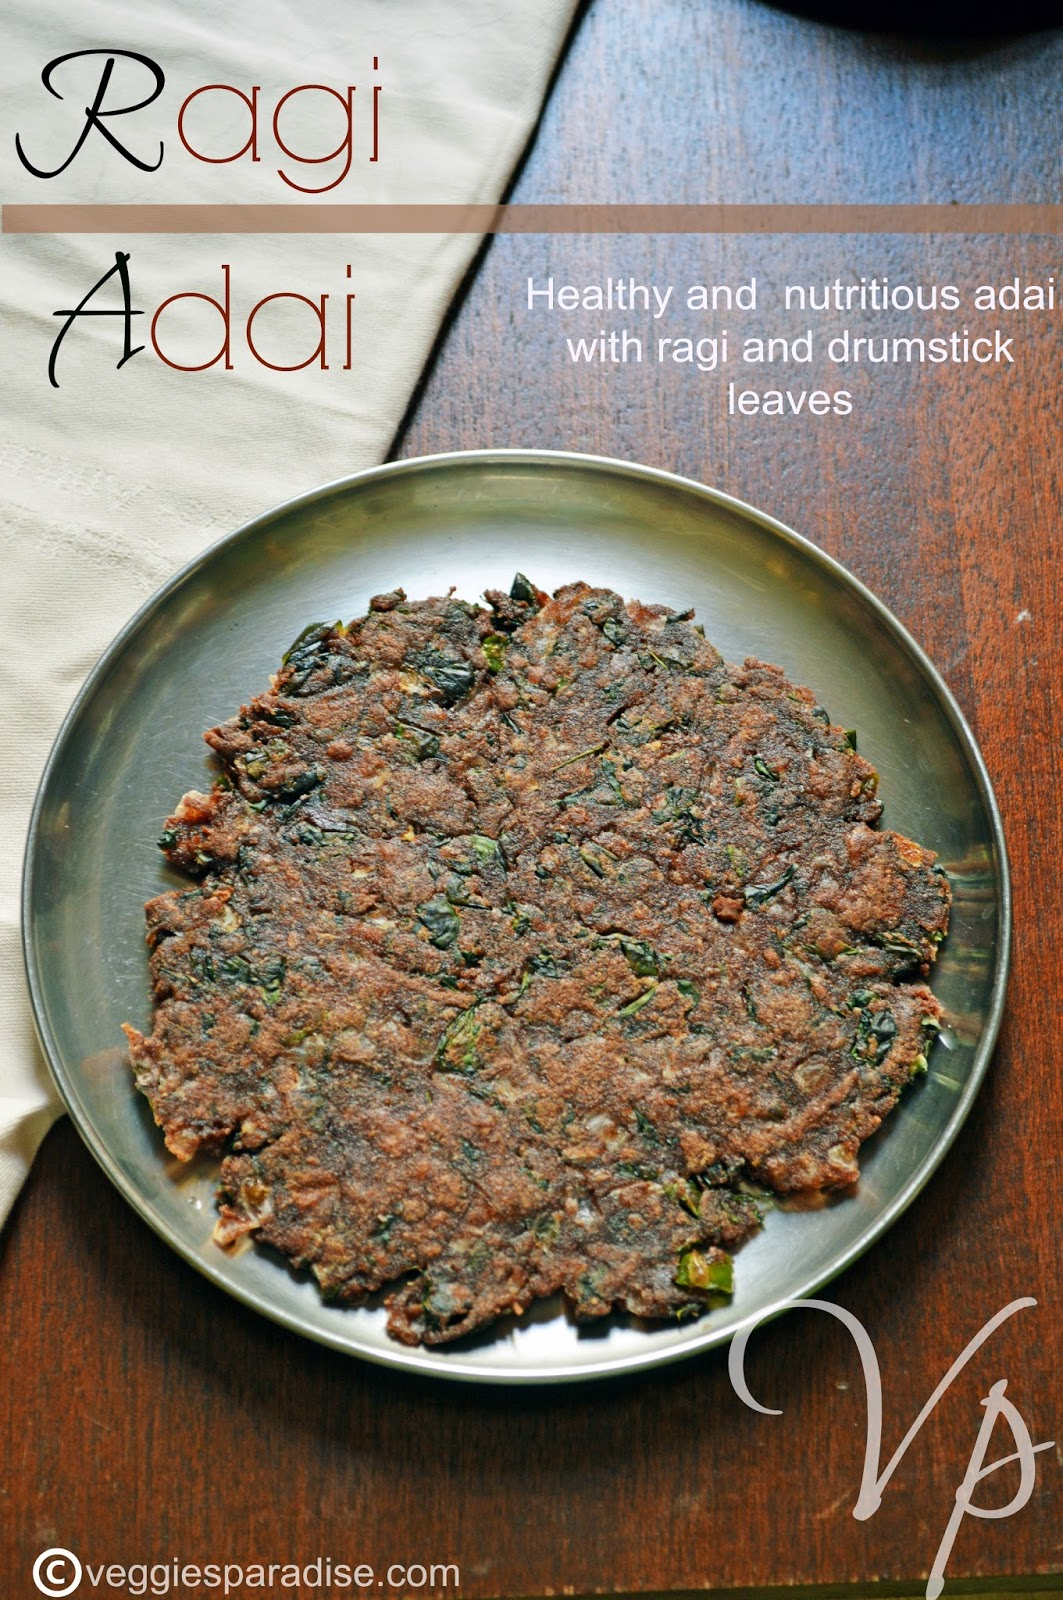 Ragi adai finger millet adai step by step veggies paradise ragi adai diabetic recipediet recipes forumfinder Choice Image